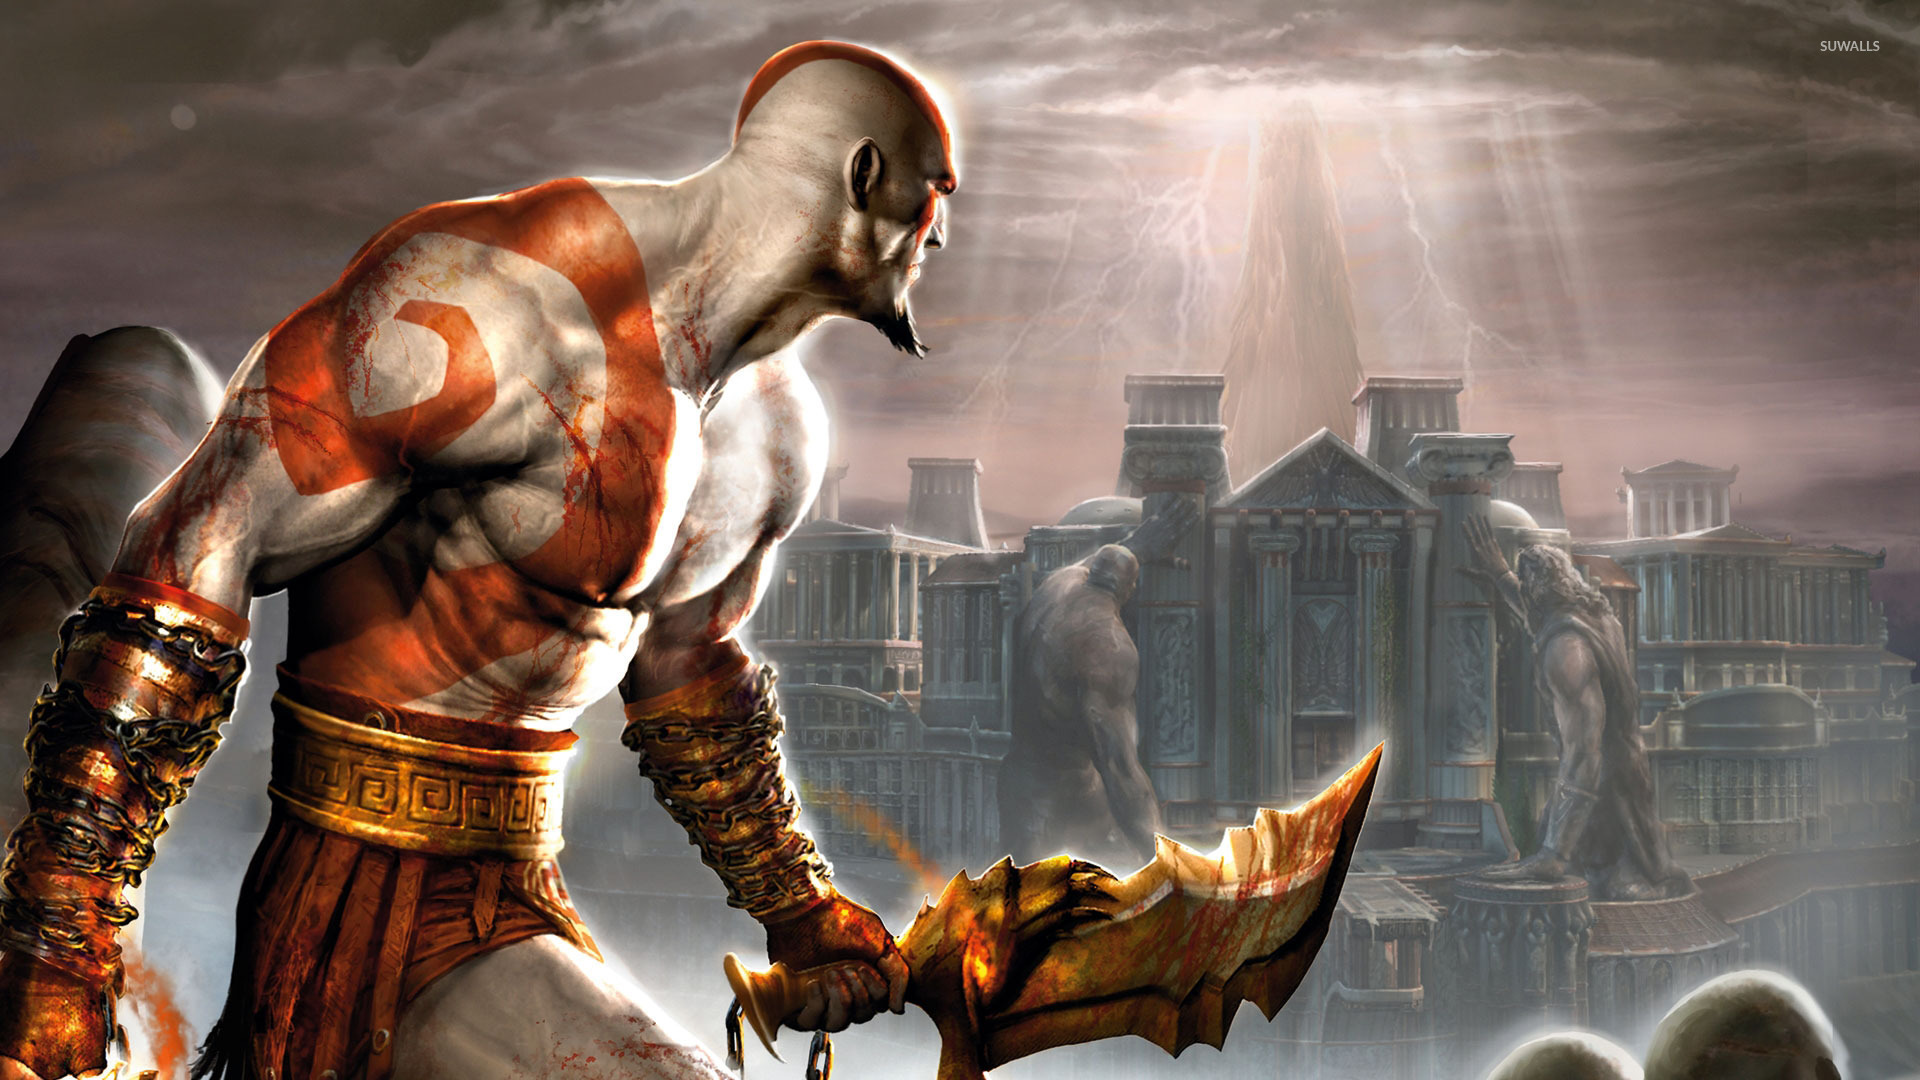 God Of War 2 Wallpaper Game Wallpapers 393